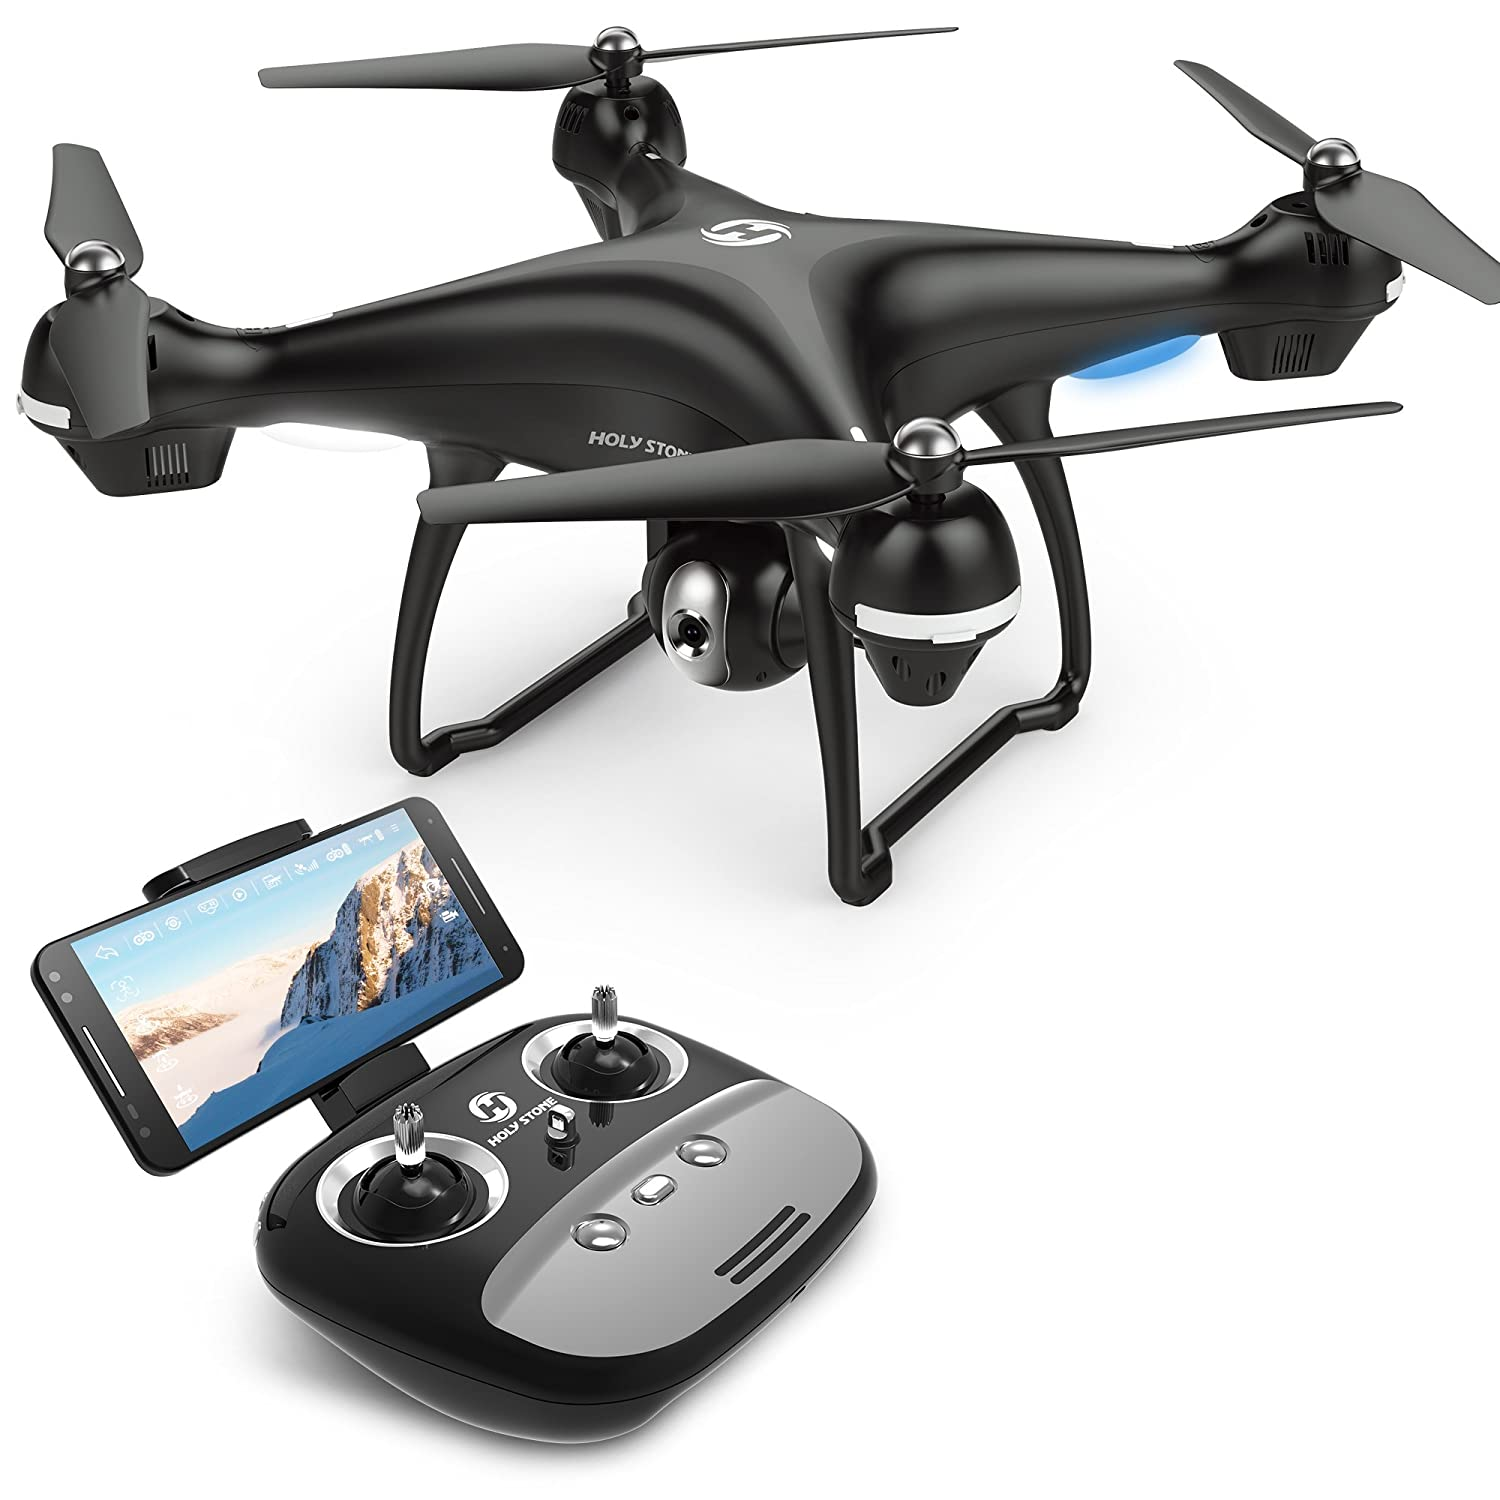 holy stone hs100 live video and gps return home quadcopter. Black Bedroom Furniture Sets. Home Design Ideas